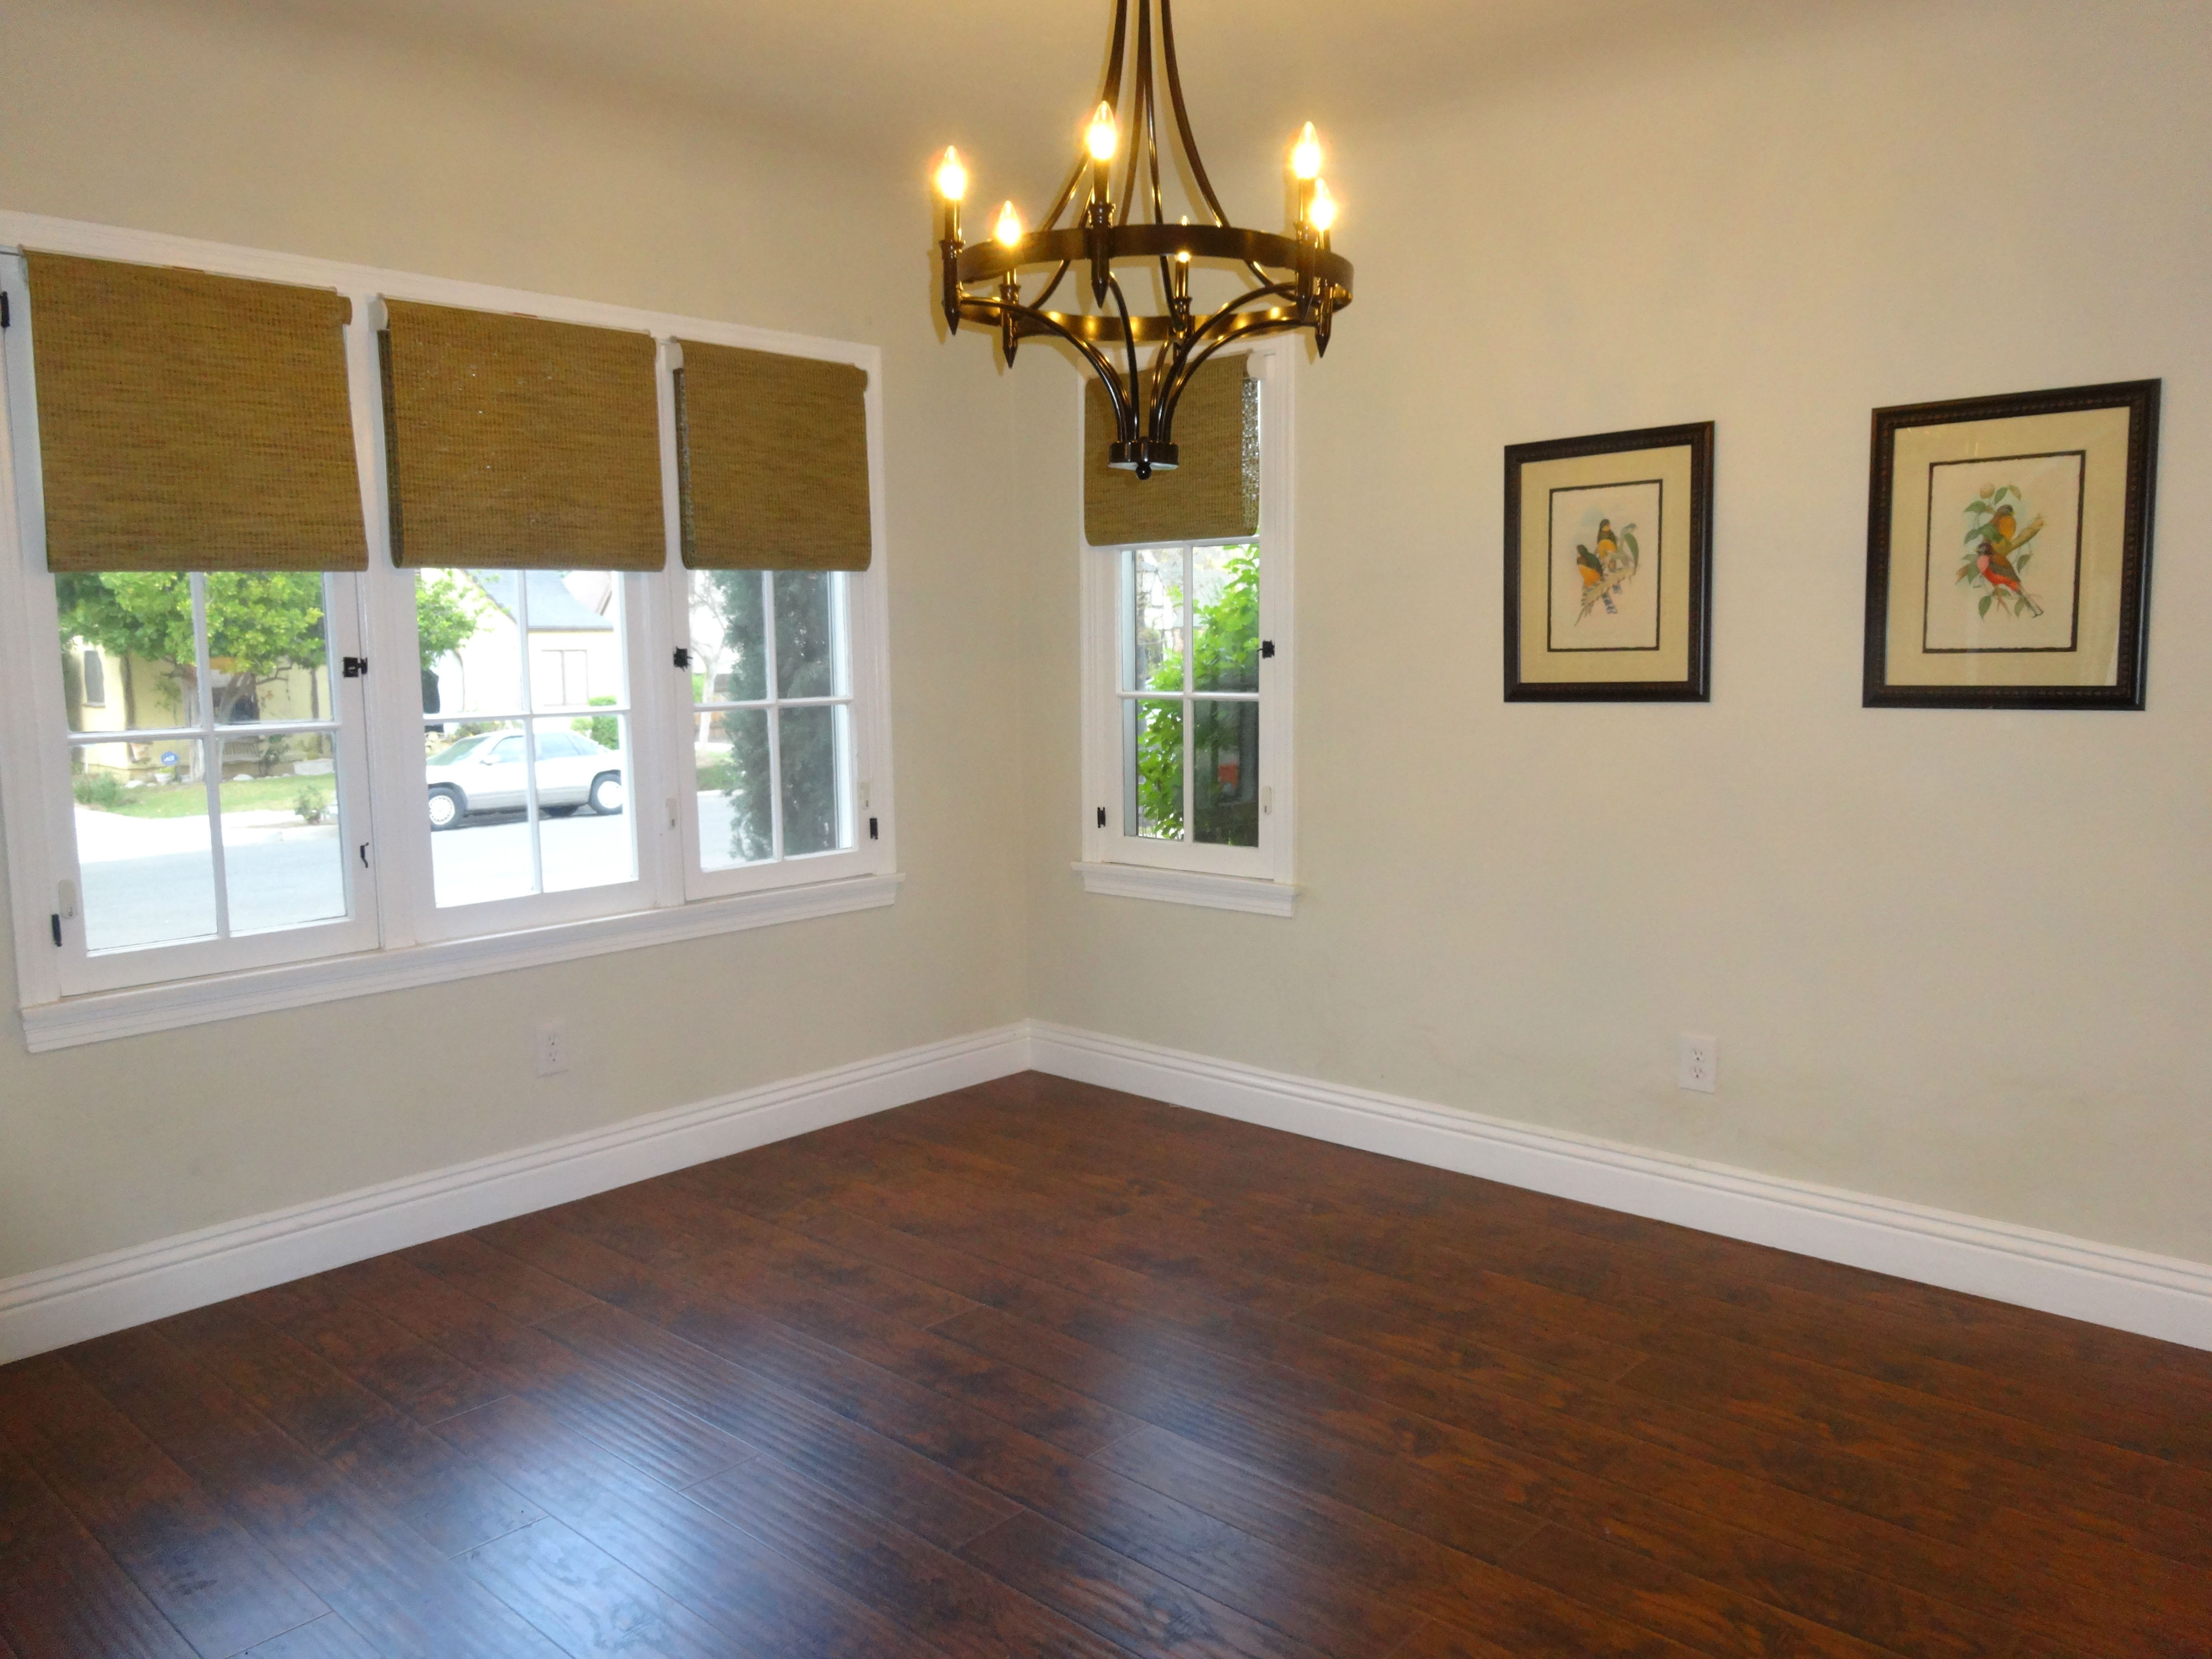 Awesome Spacious formal dining room with chandelier and lots of windows